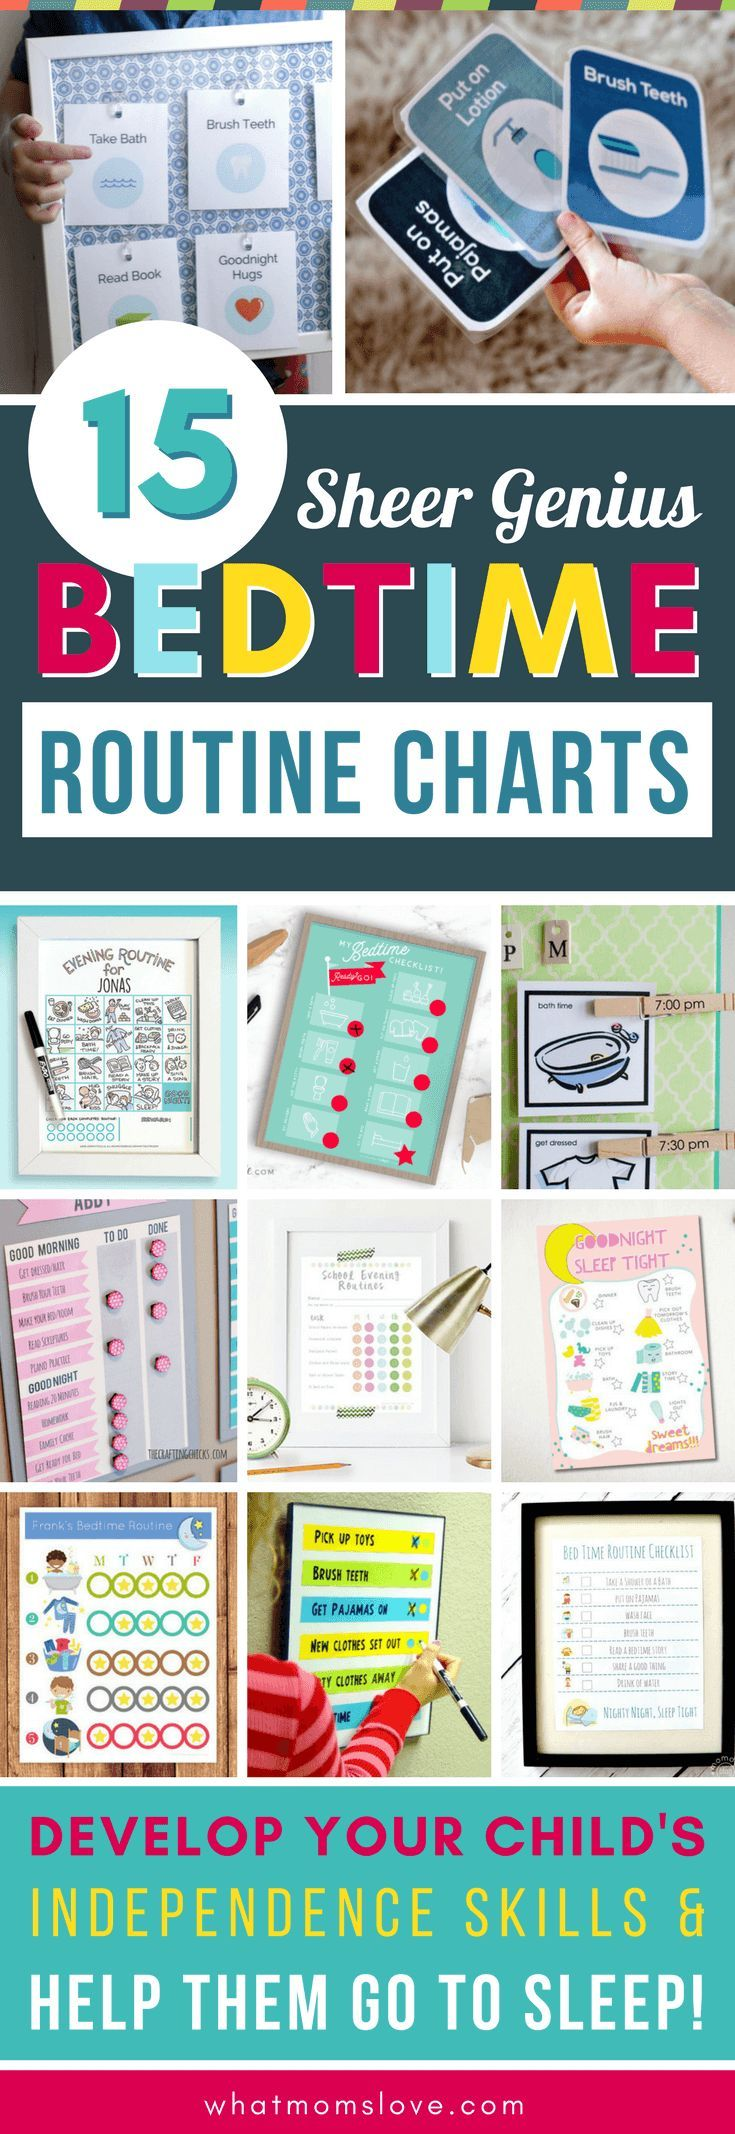 Printable DIY Bedtime Routine Charts for Kids | Fun night time chore charts for toddlers and beyond to help them wind down for bed and get more sleep! Perfect for back to school or revamping your family's sleep schedule